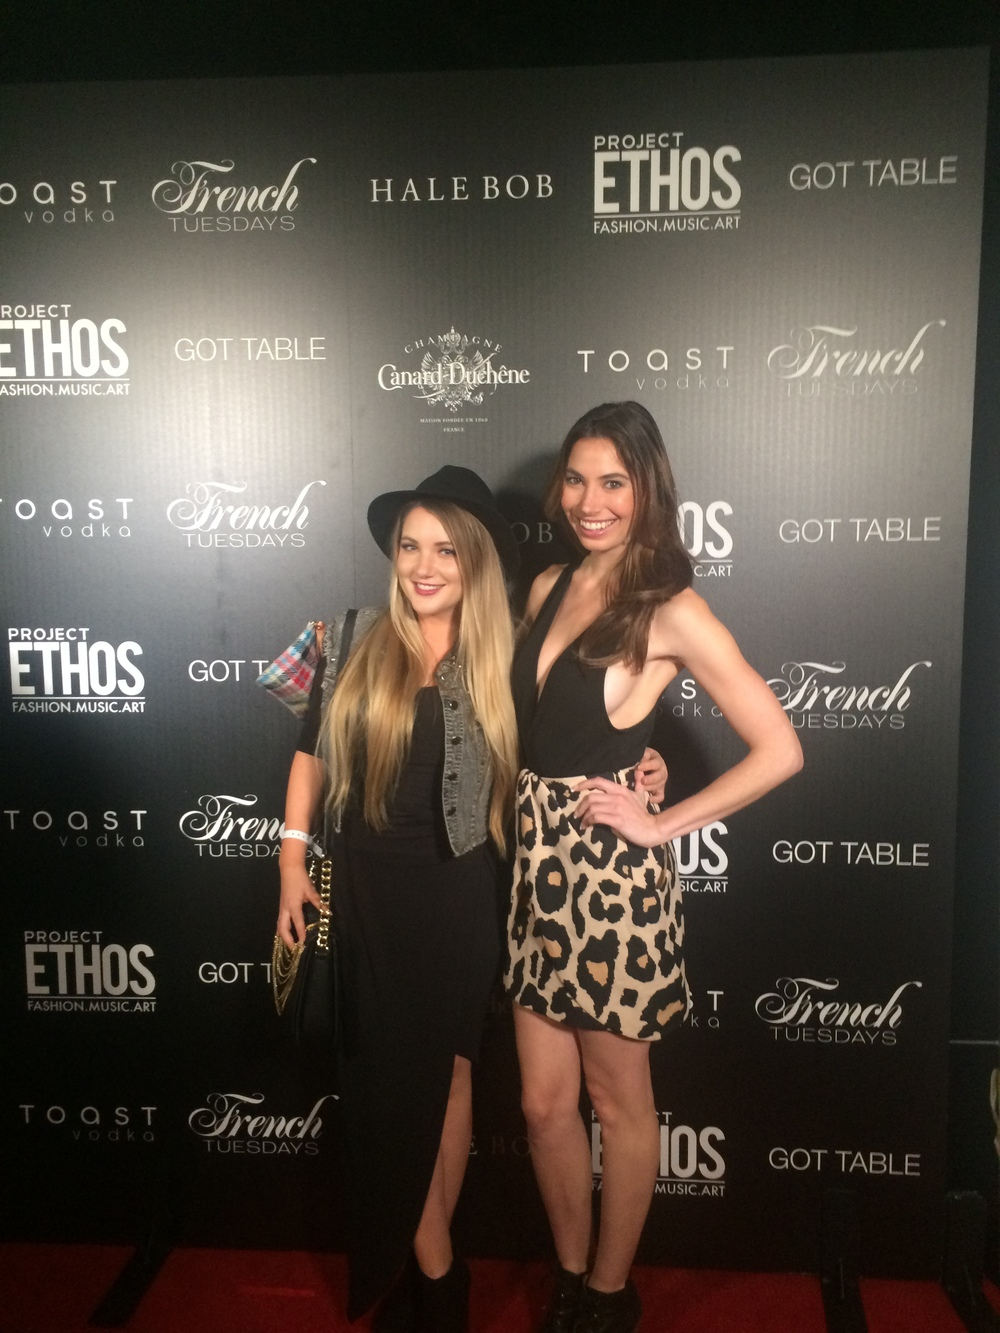 Ashley Reinke and Shelley Buckner at The Project Ethos LAFW Show.